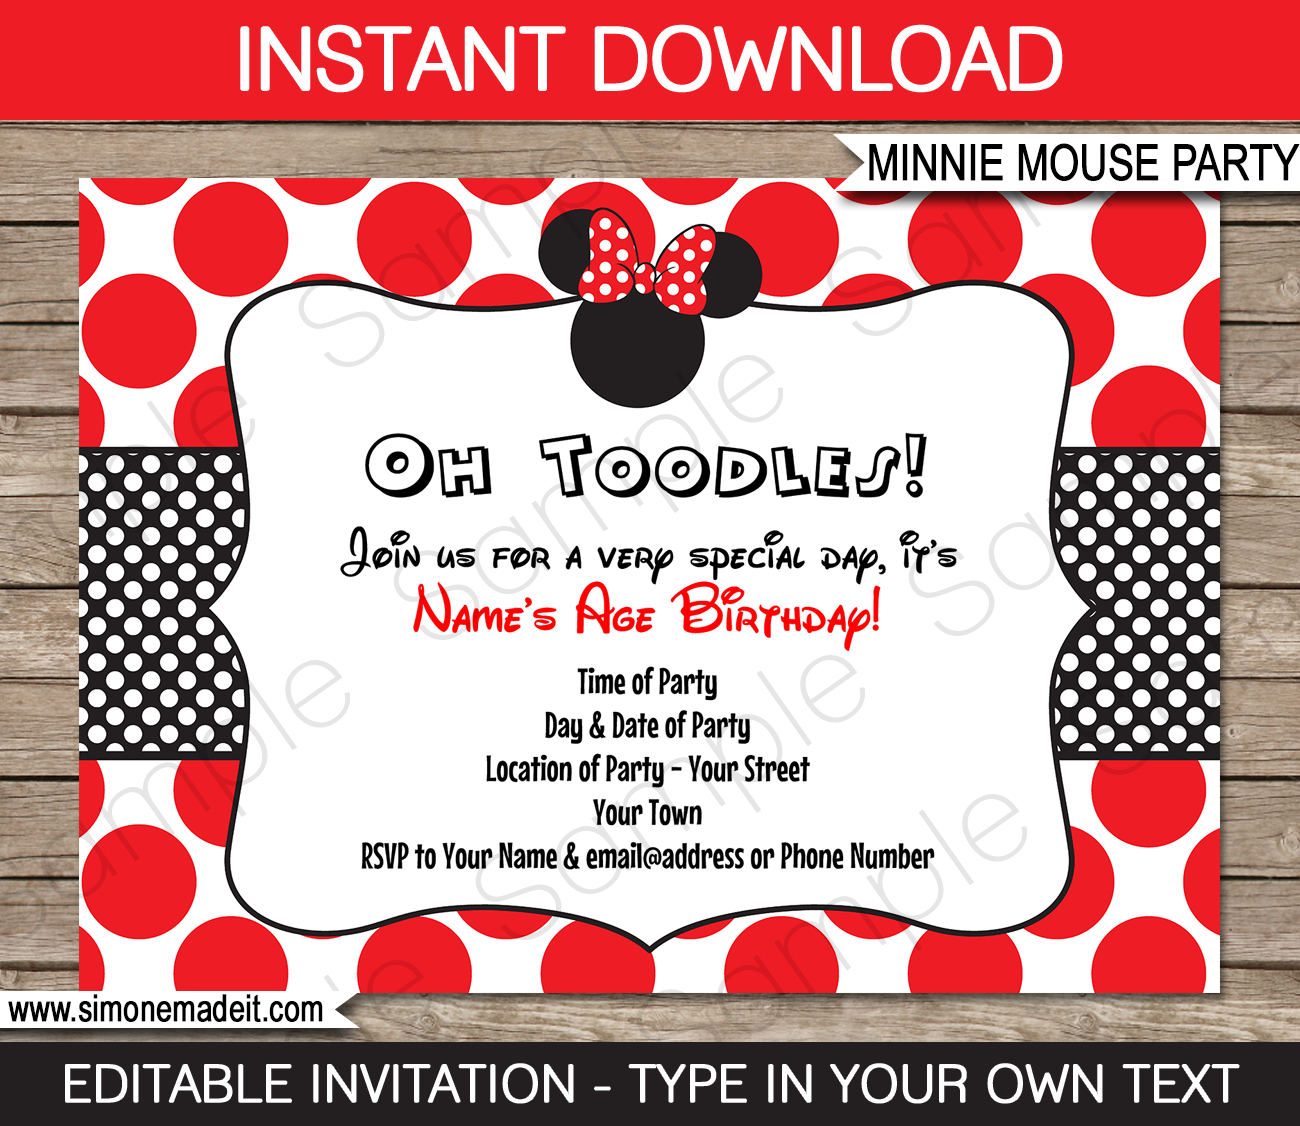 Minnie Mouse Birthday Party Invitations Template   Red - Free Printable Minnie Mouse Party Invitations